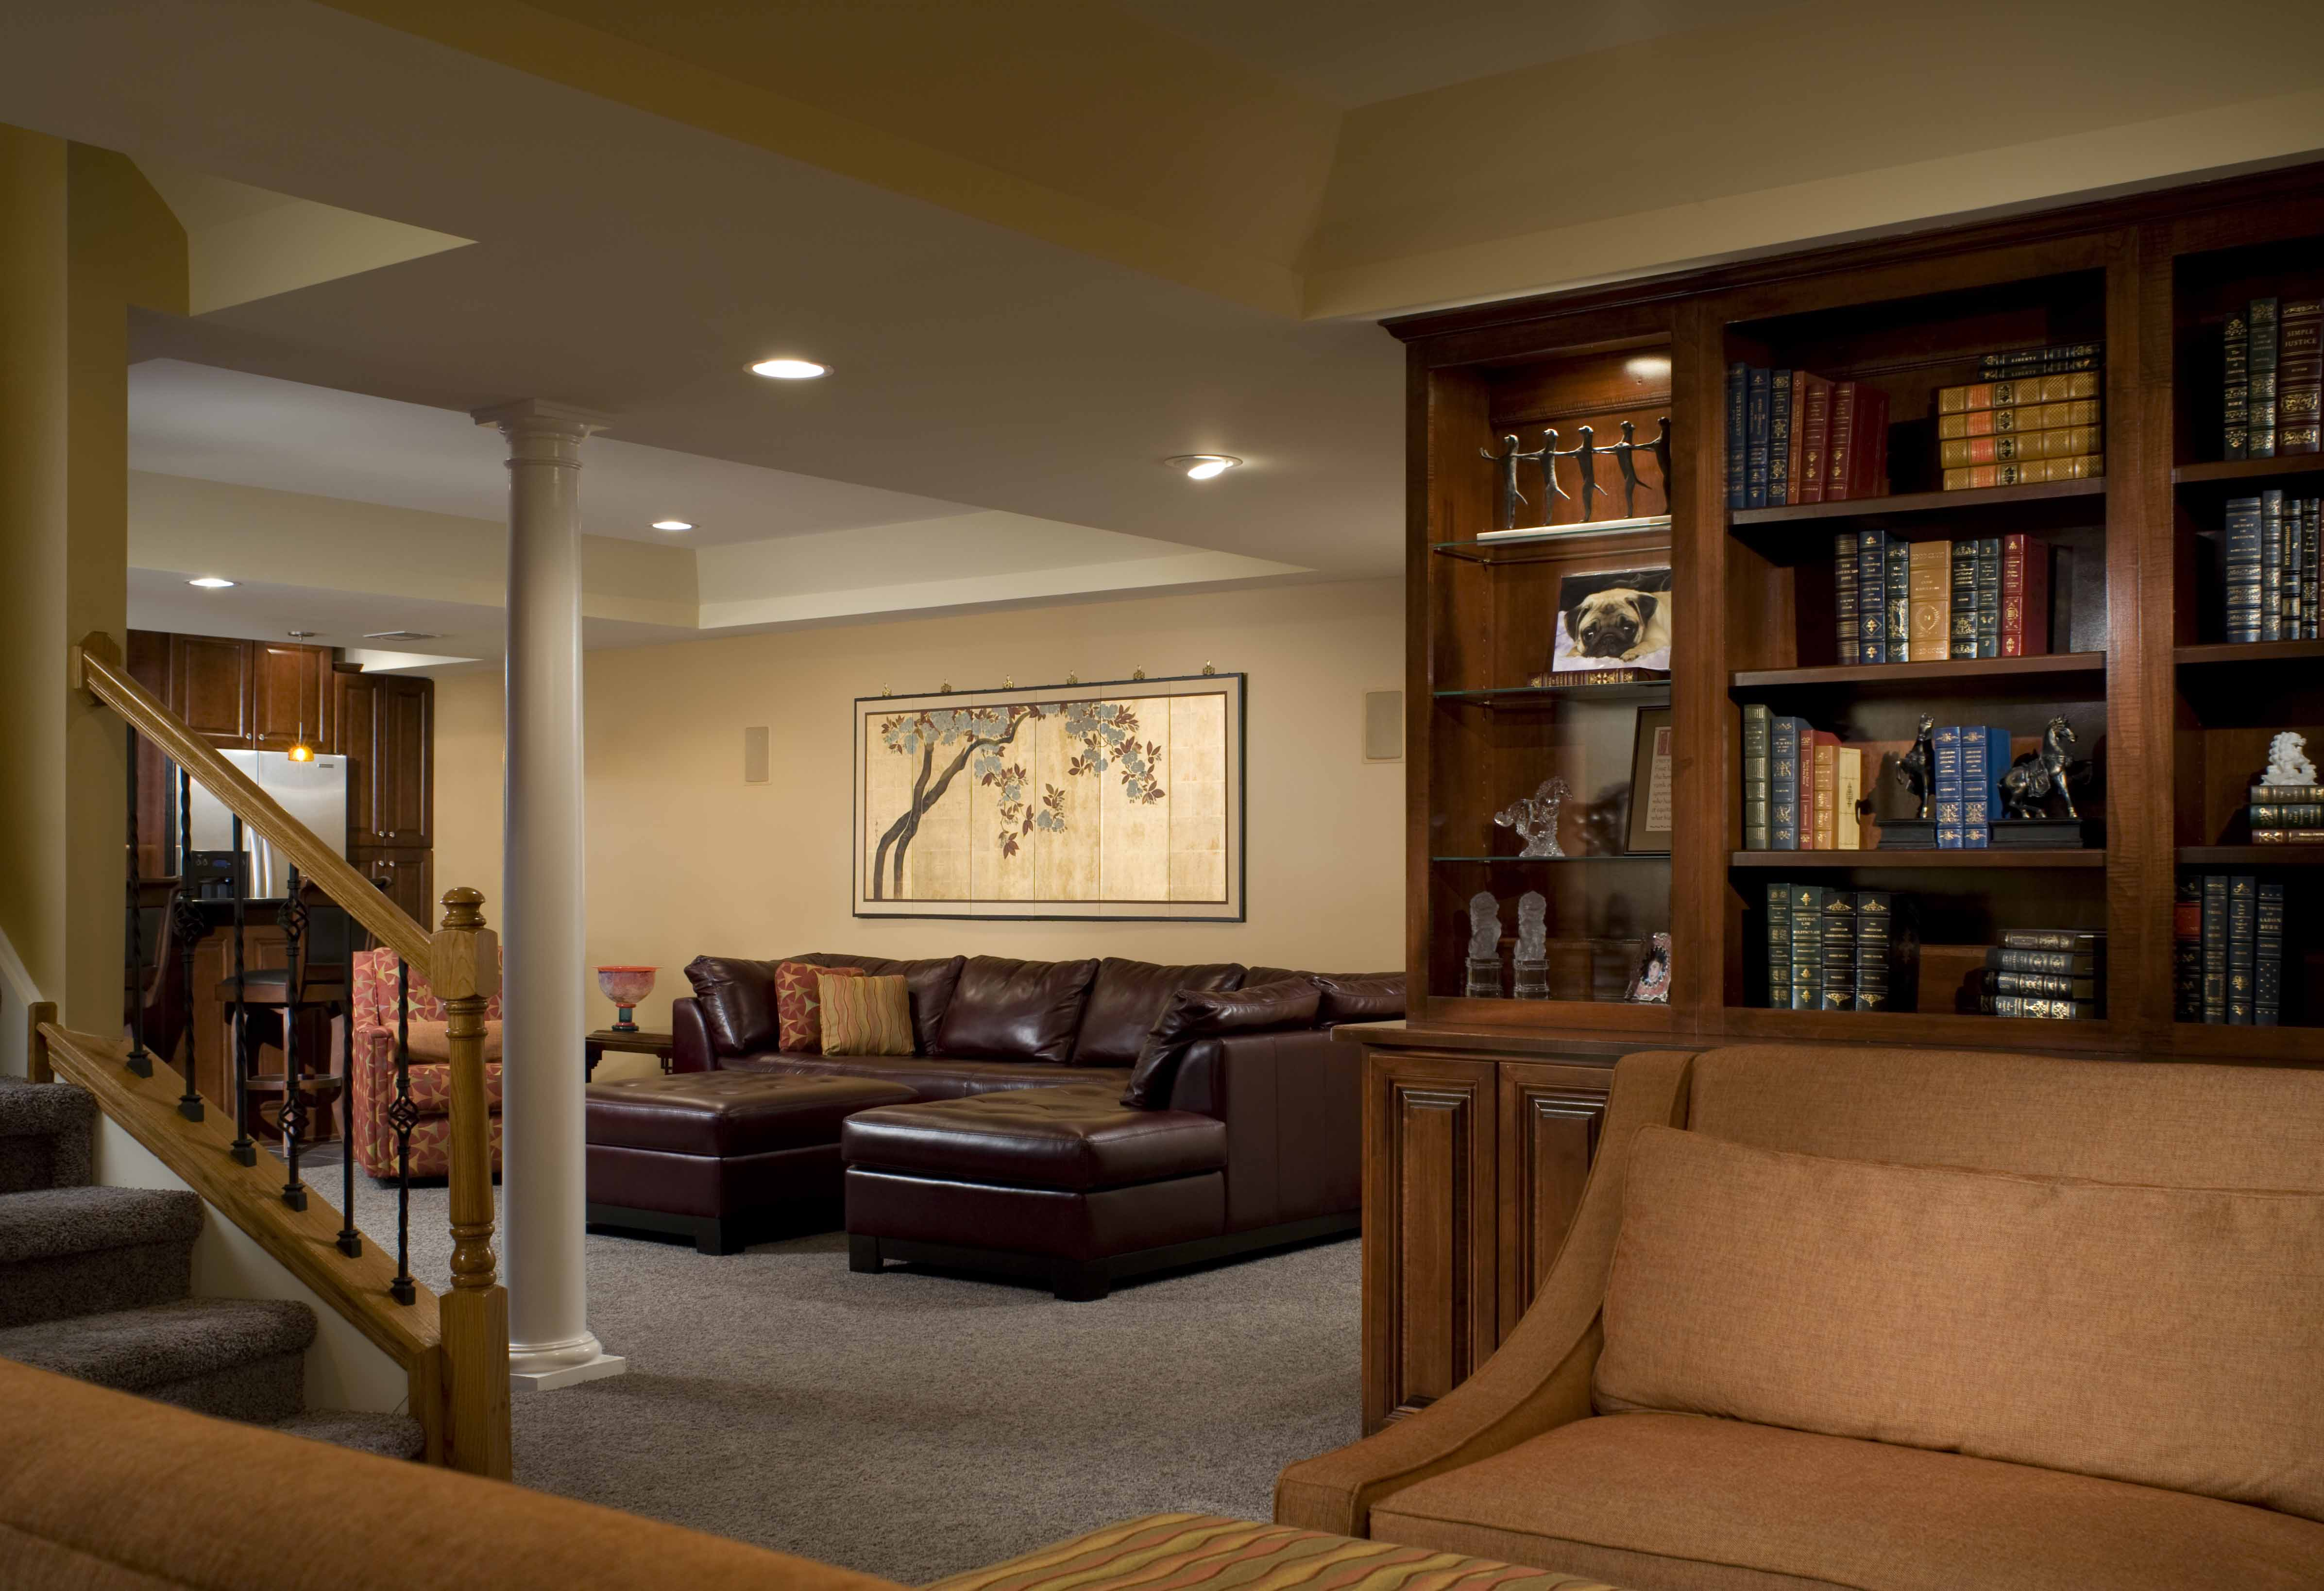 Remodeling Basement Ideas Entrancing 30 Basement Remodeling Ideas & Inspiration Decorating Design